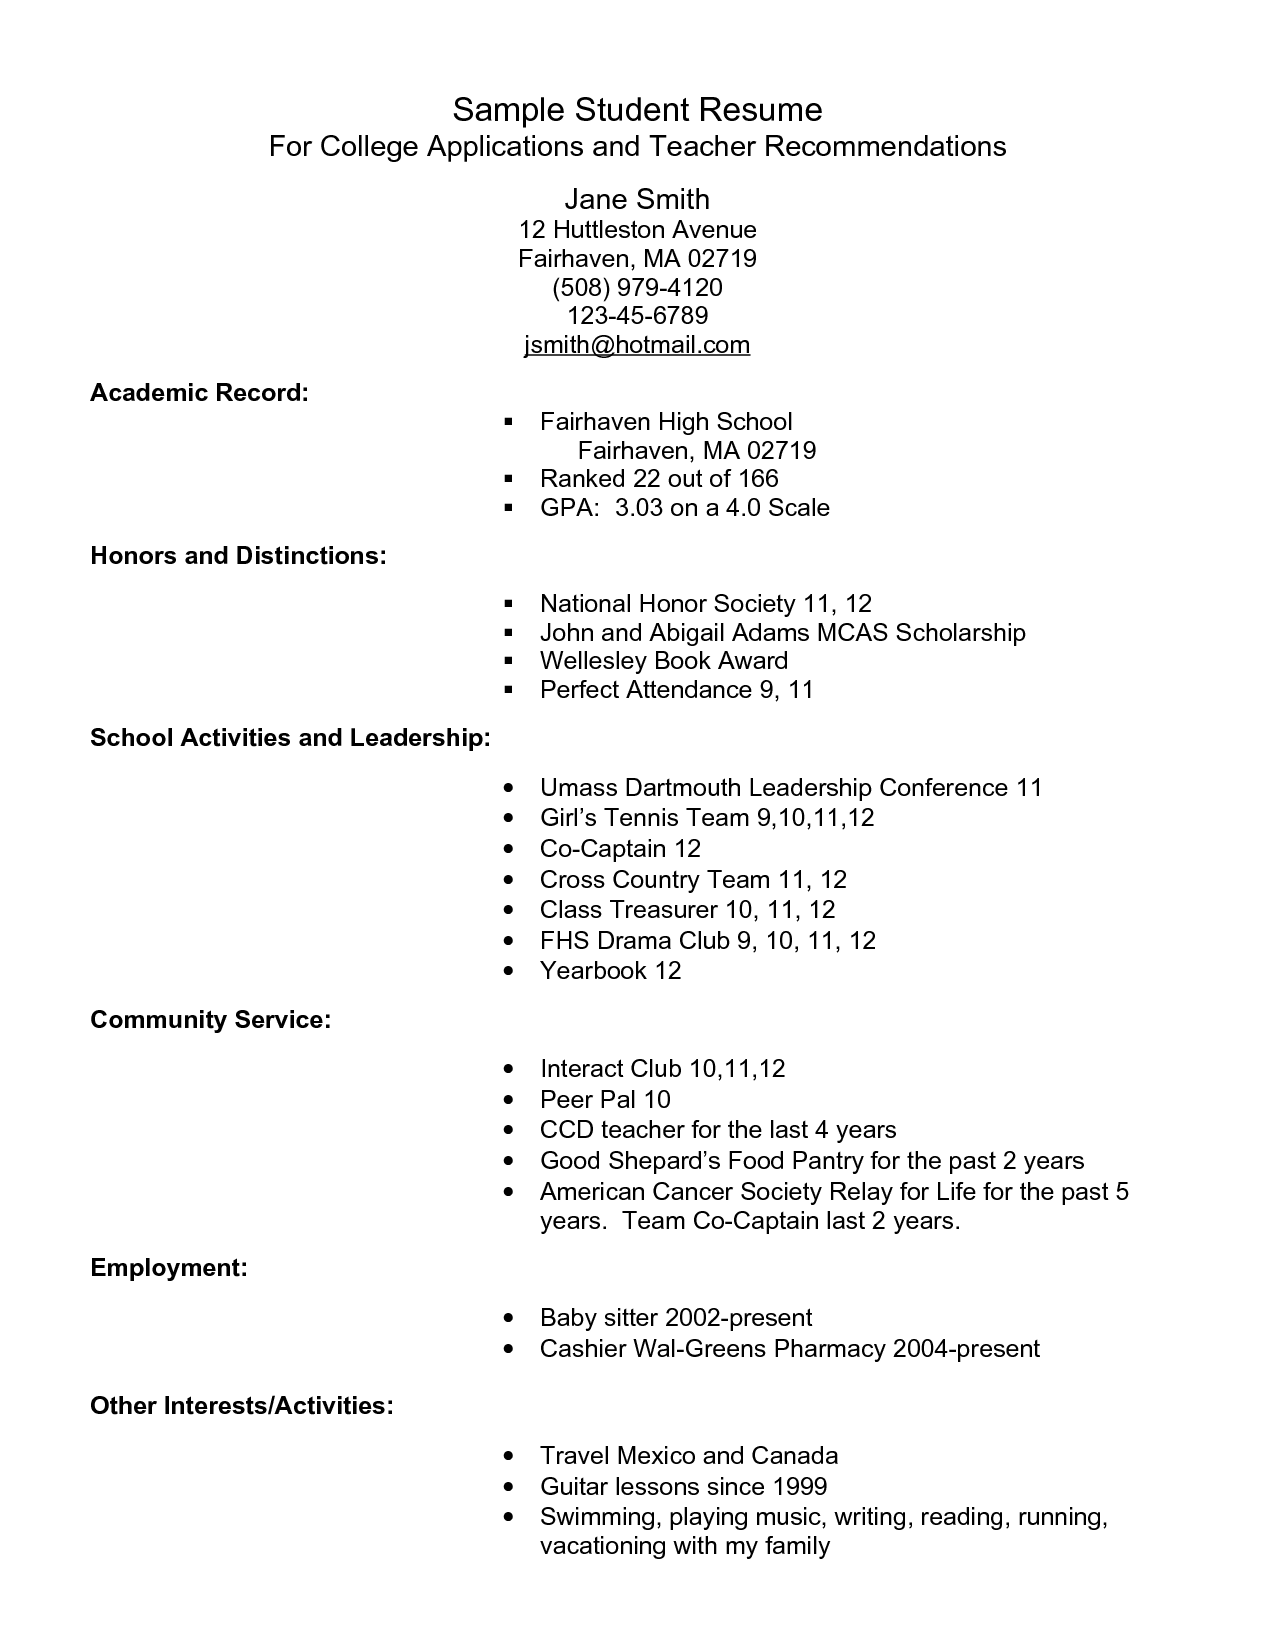 Resume For College Students Example Resume For High School Students For College Applications